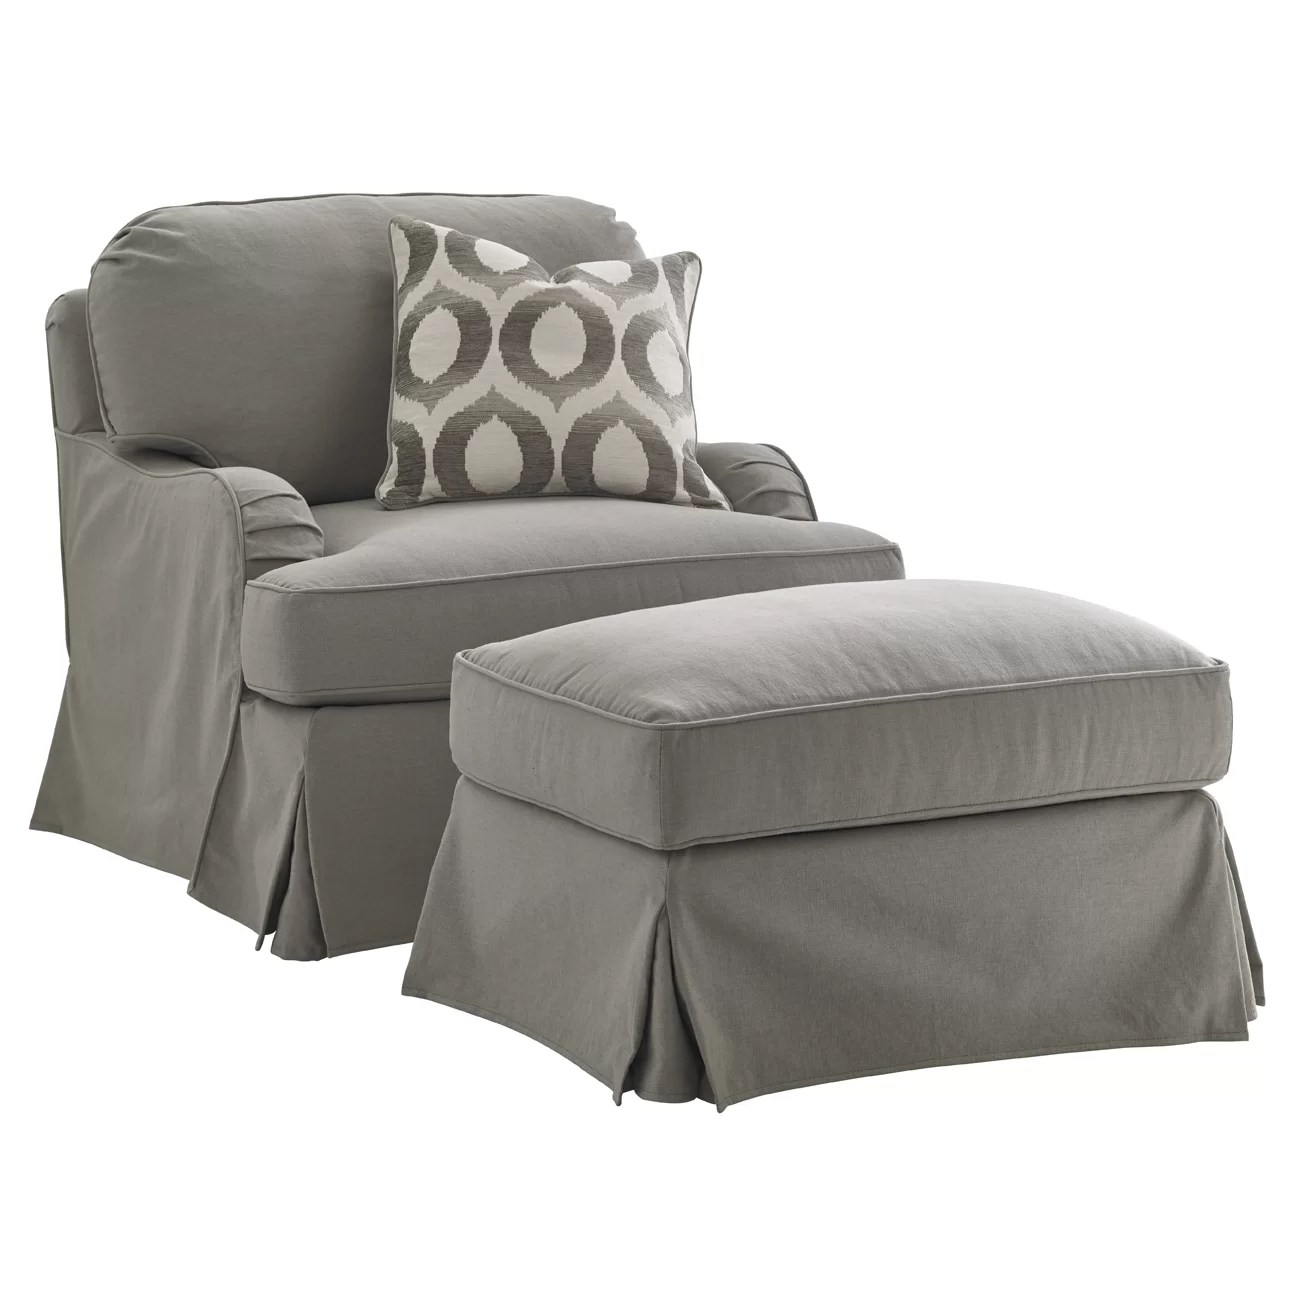 Slipcover For Oversized Chair And Ottoman Oyster Bay Slipcover Chair And Ottoman Wayfair